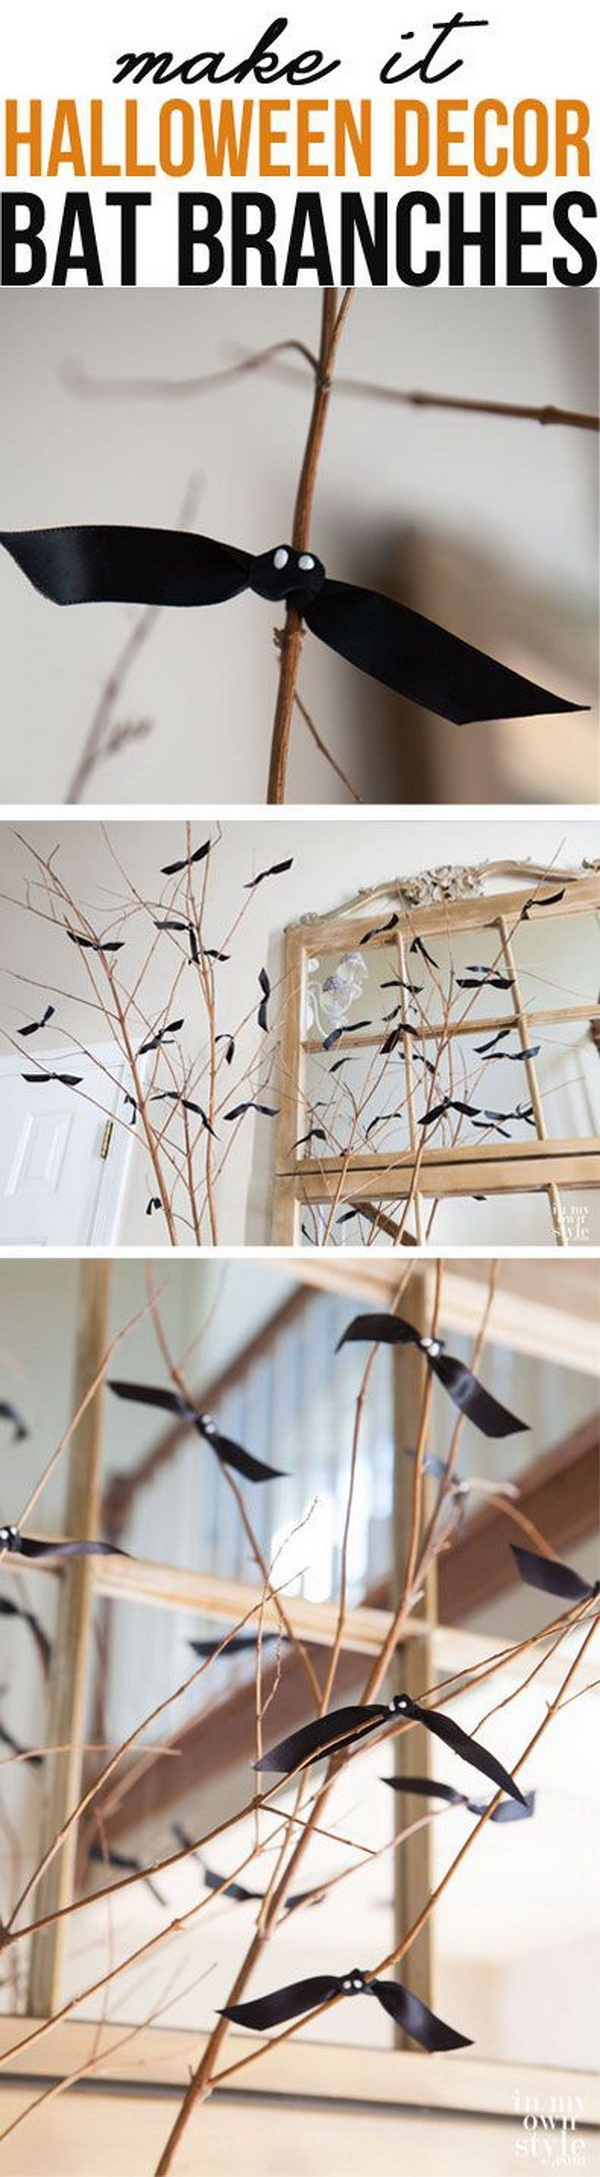 Handmade Bat Branches. Simple DIY craft to add to the decoration's spook factor during this Halloween season.